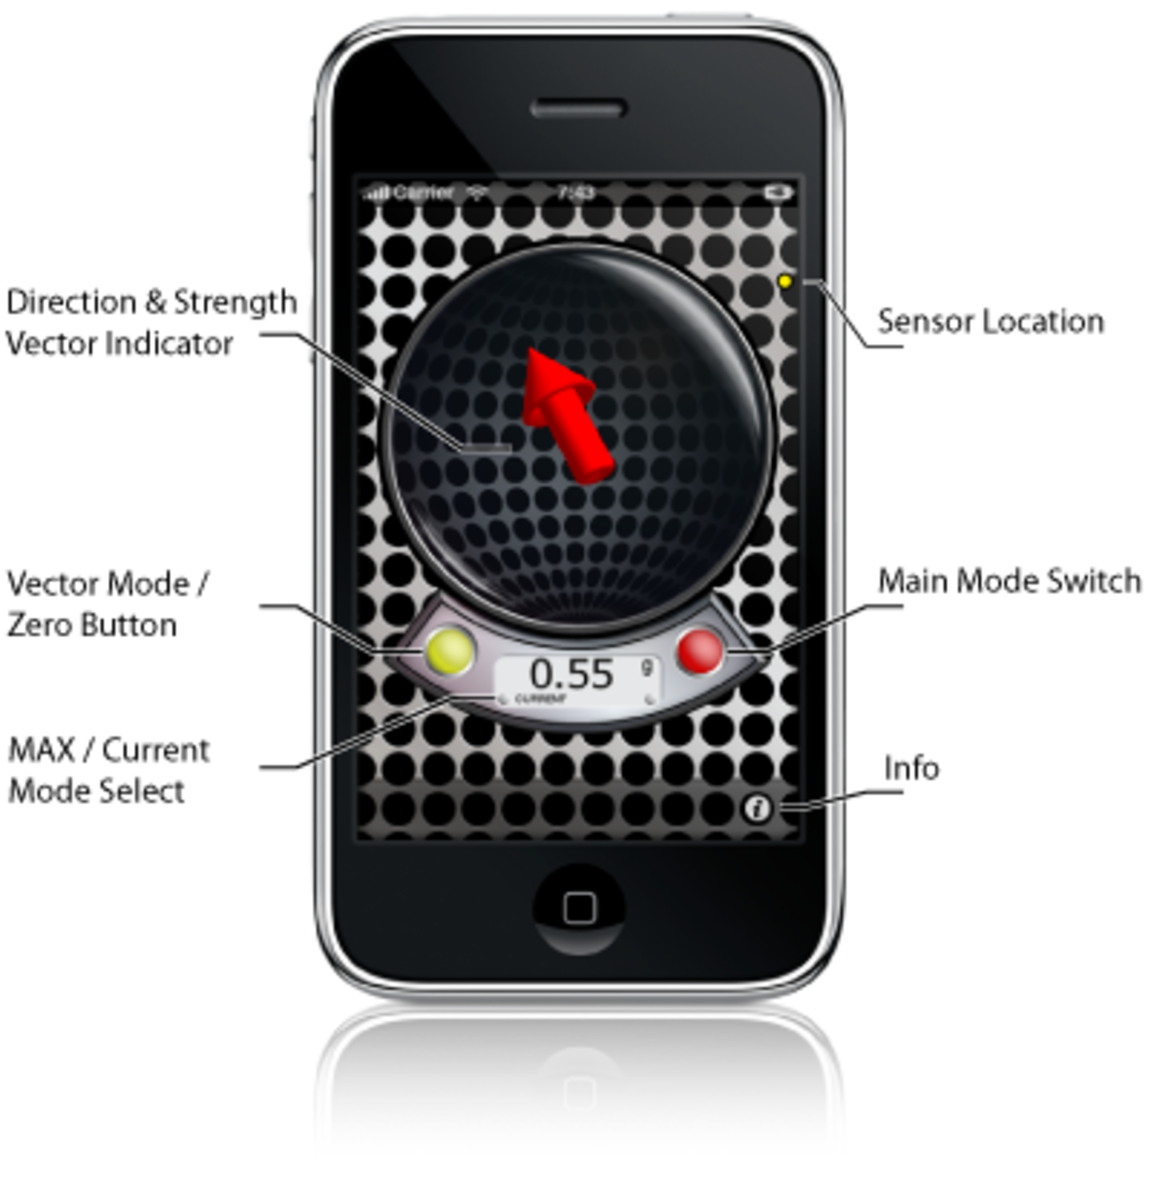 AccelMeter App for iPhone/iPod